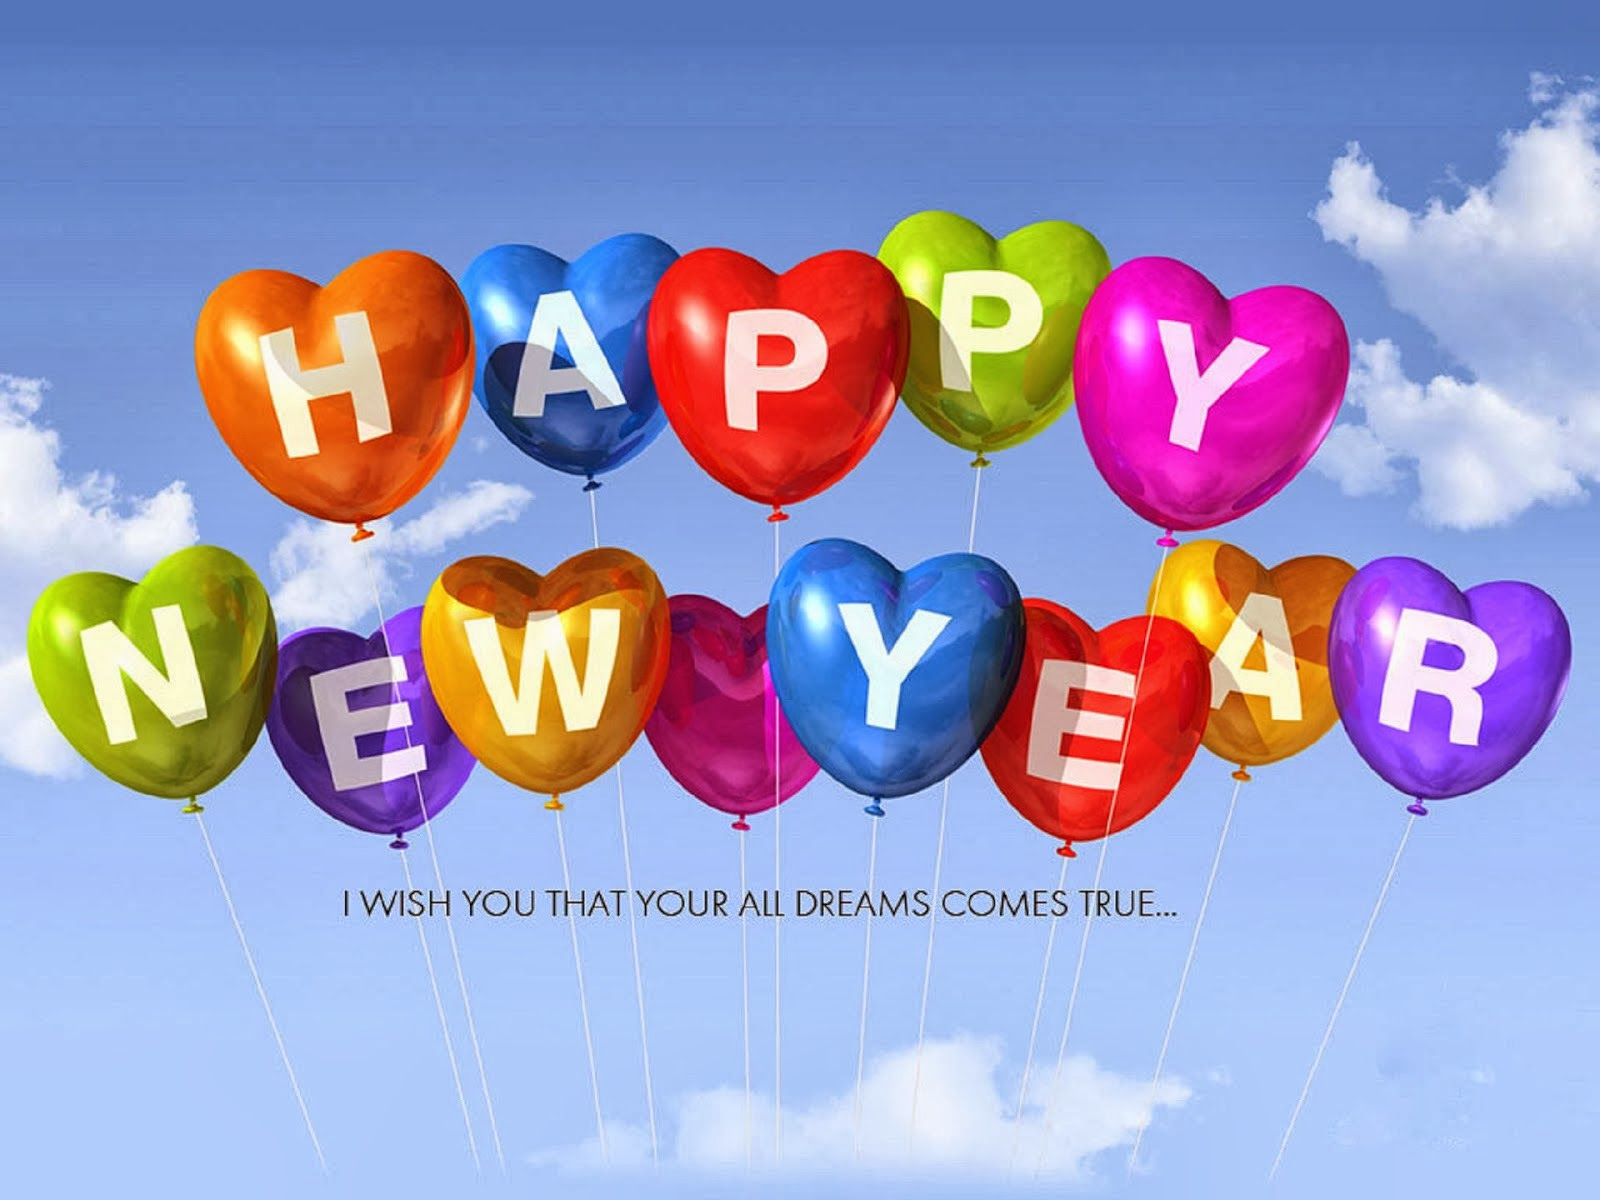 dreams comes true new year 2015